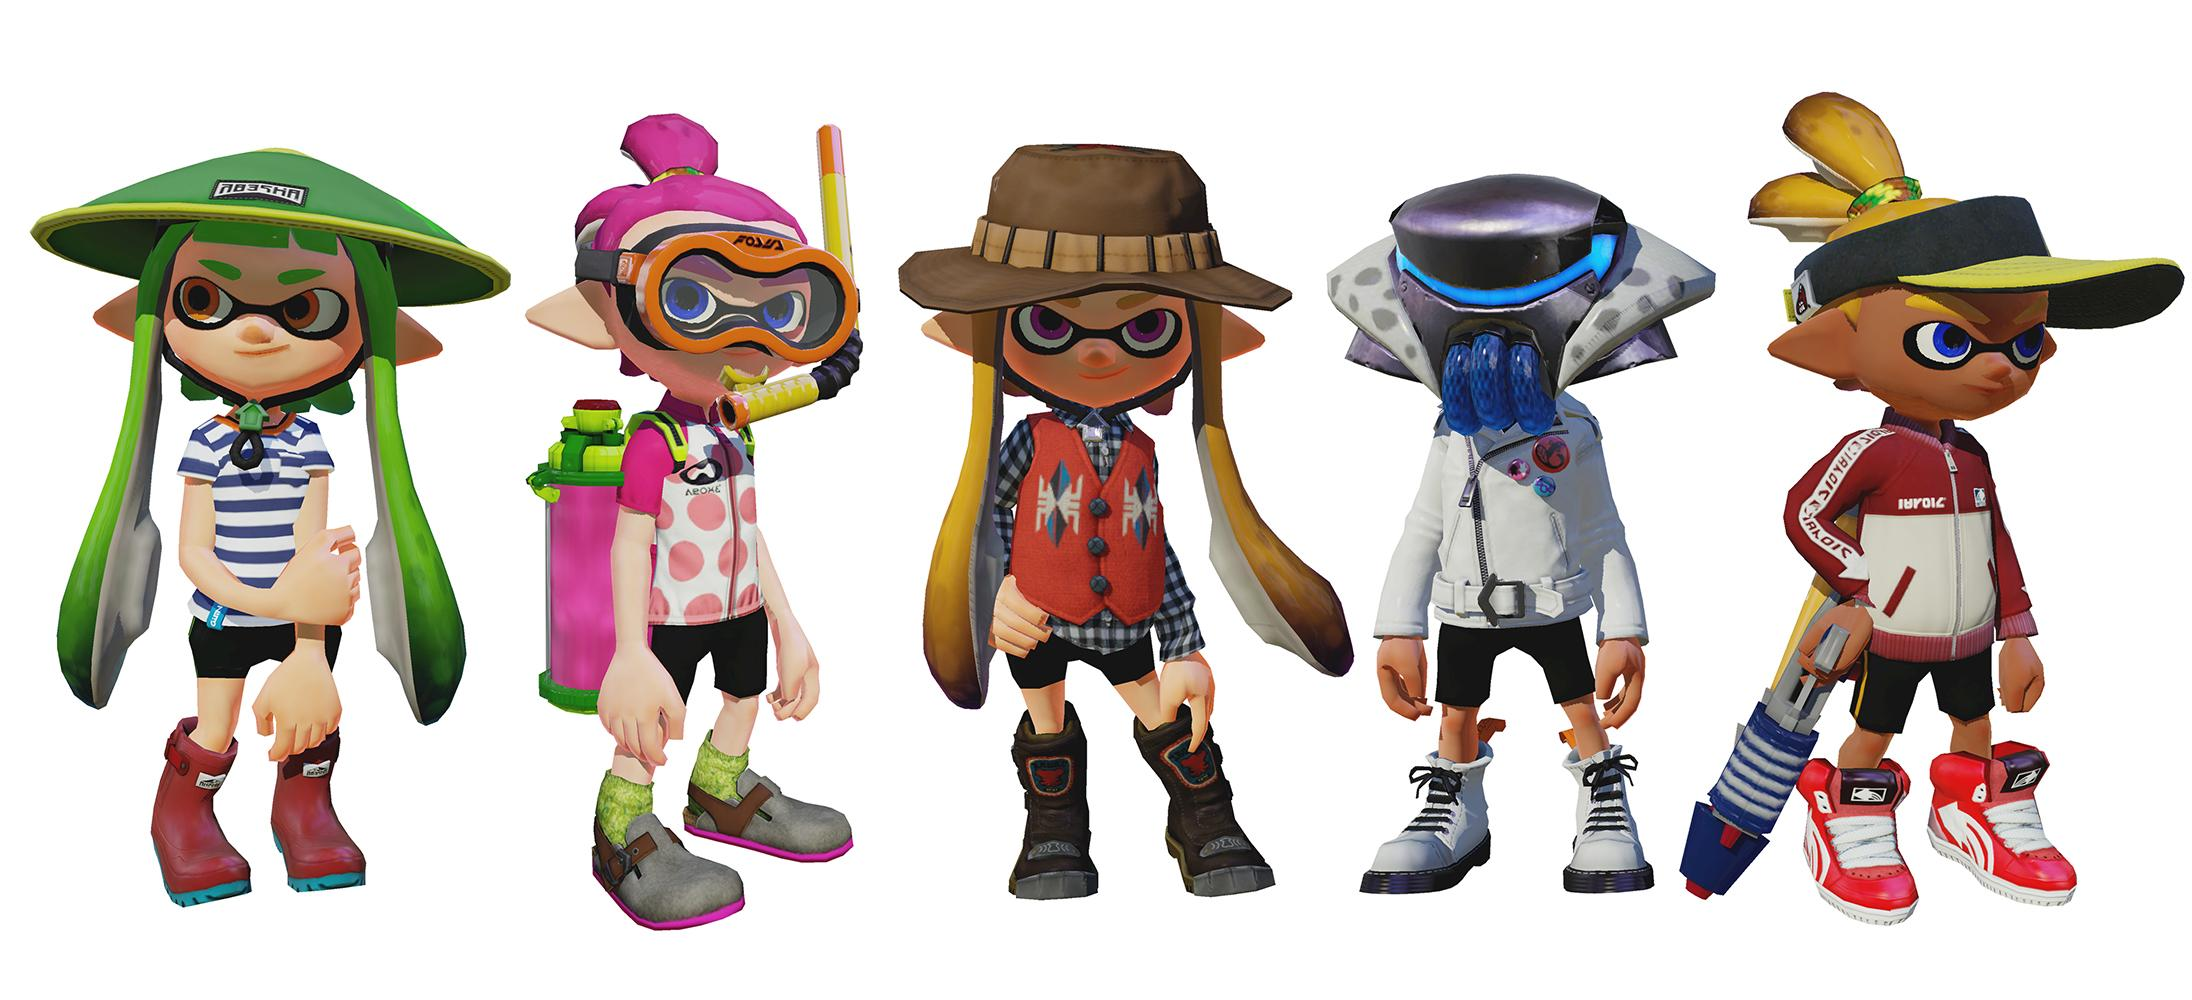 Splatoon Preview Of Some Of The New Gear Including The